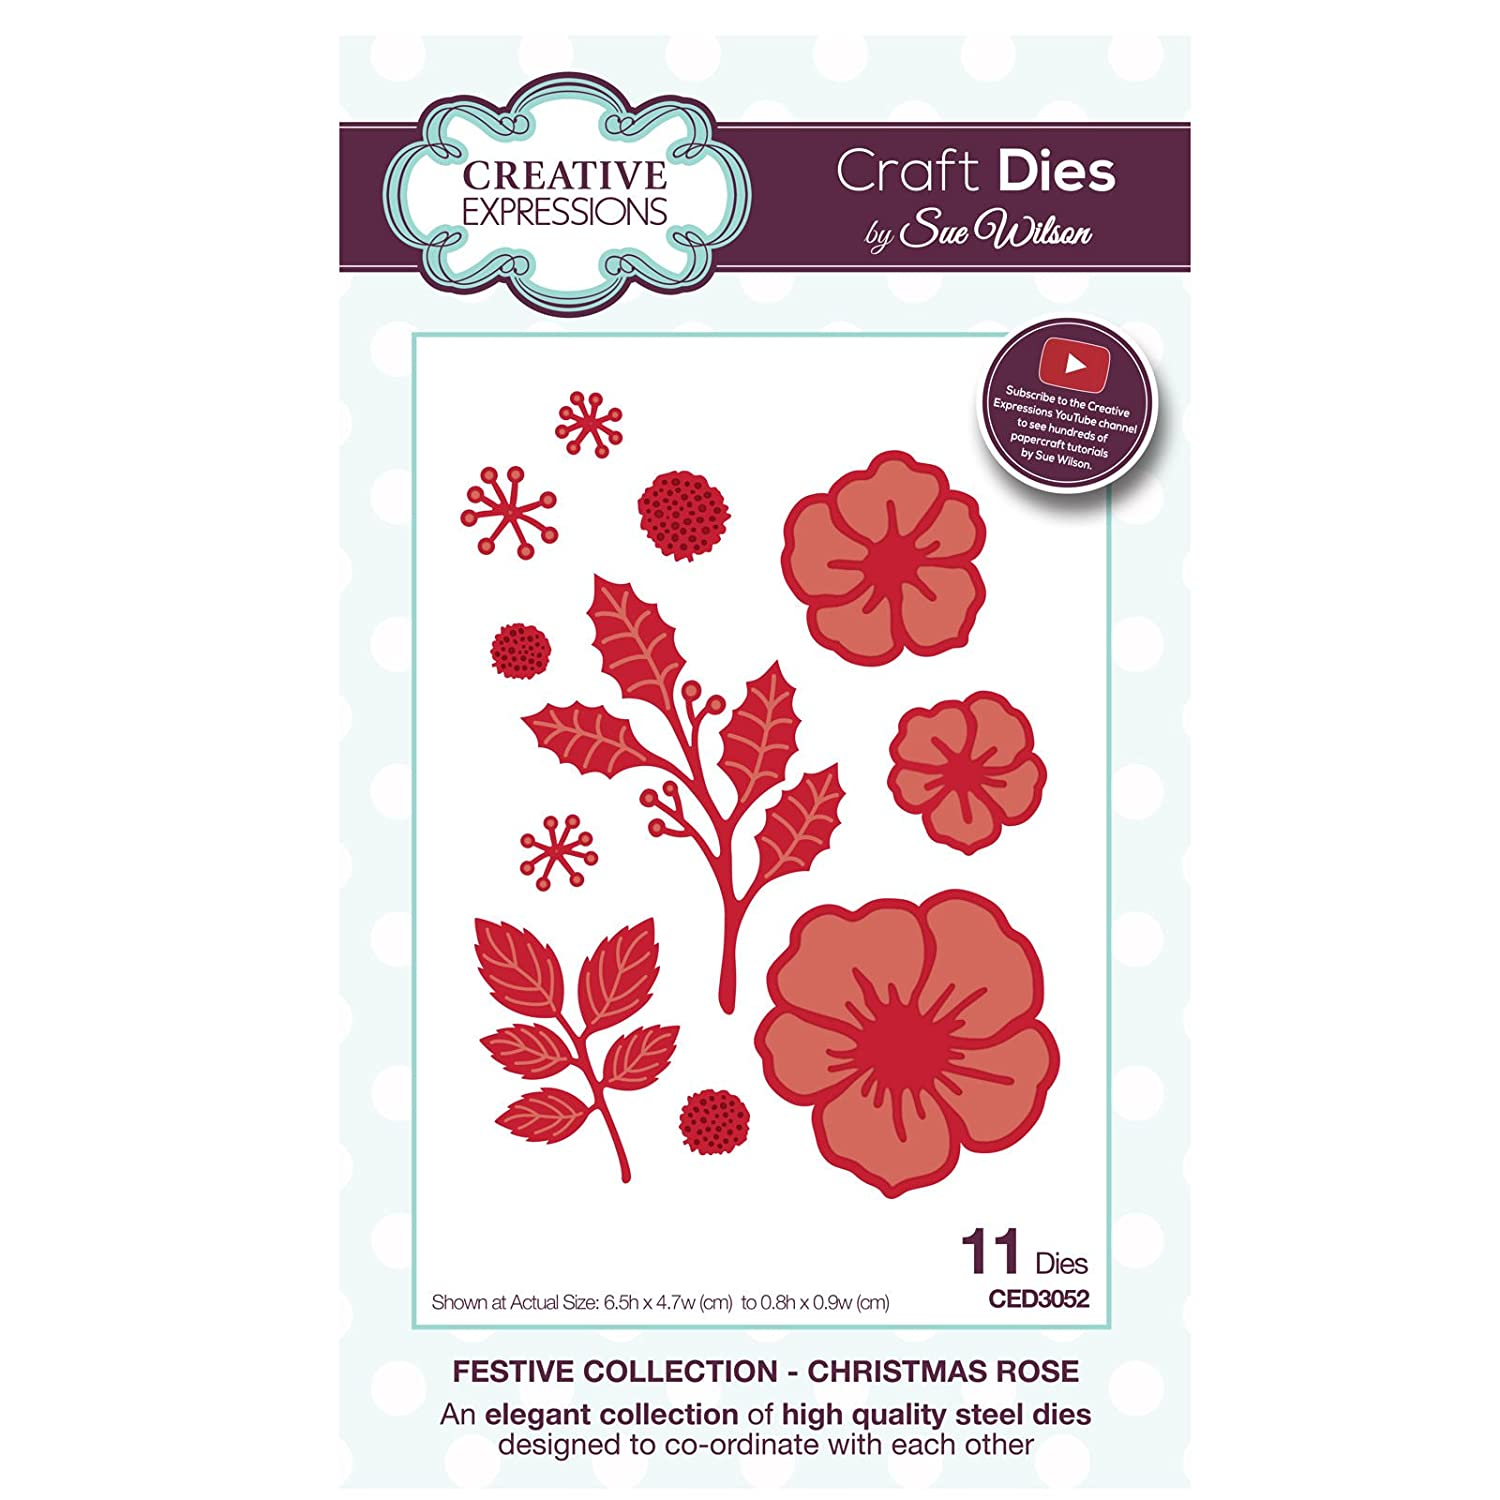 Sue Wilson CED3052 Festive Collection Christmas Rose Dies Ecstasy Crafts Inc